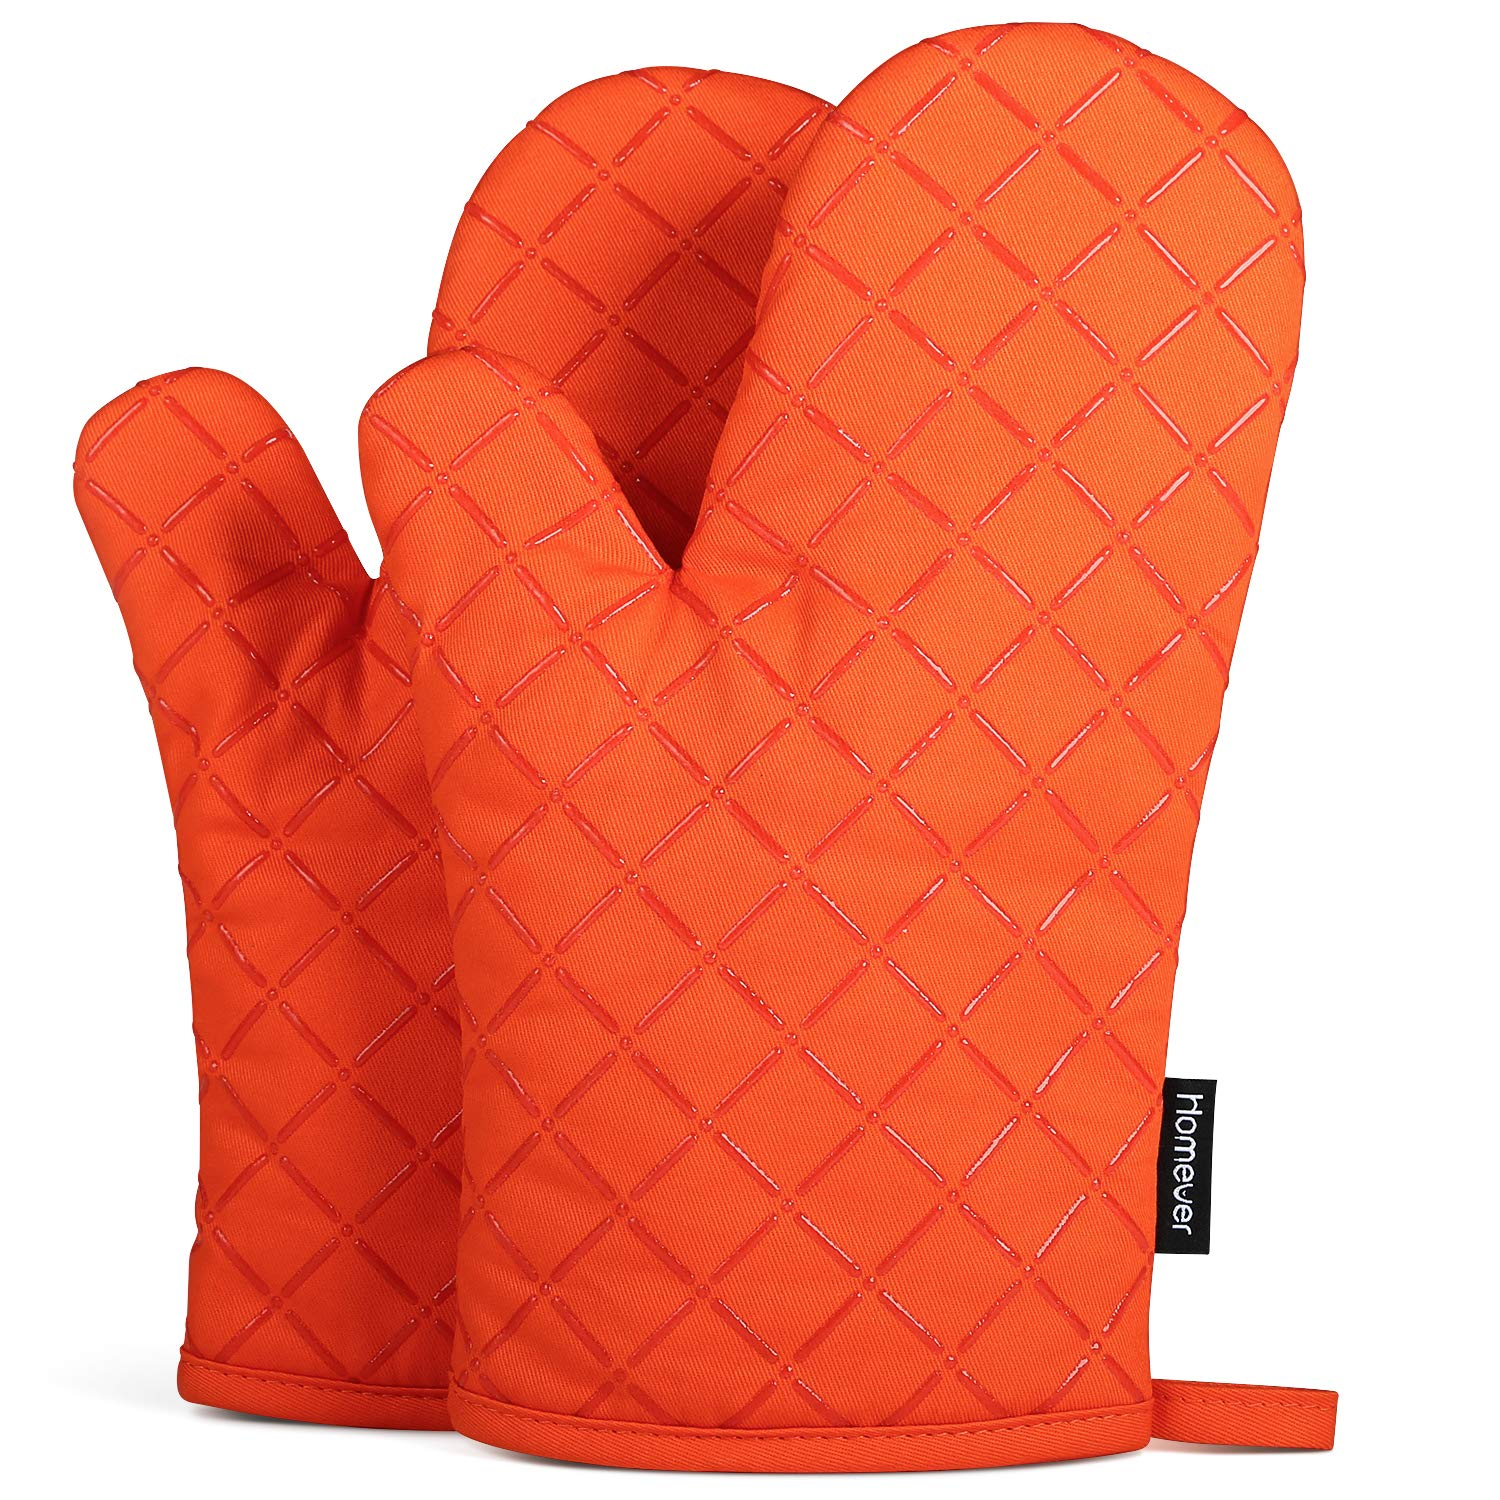 Homever Cotton Oven Mitts with Silicone, Heat Resistant to 464° F, Recycled Cotton Infill, Flexibility Non-Slip Kitchen Oven Gloves for Baking and Kitchen, 1 Pair (Orange)